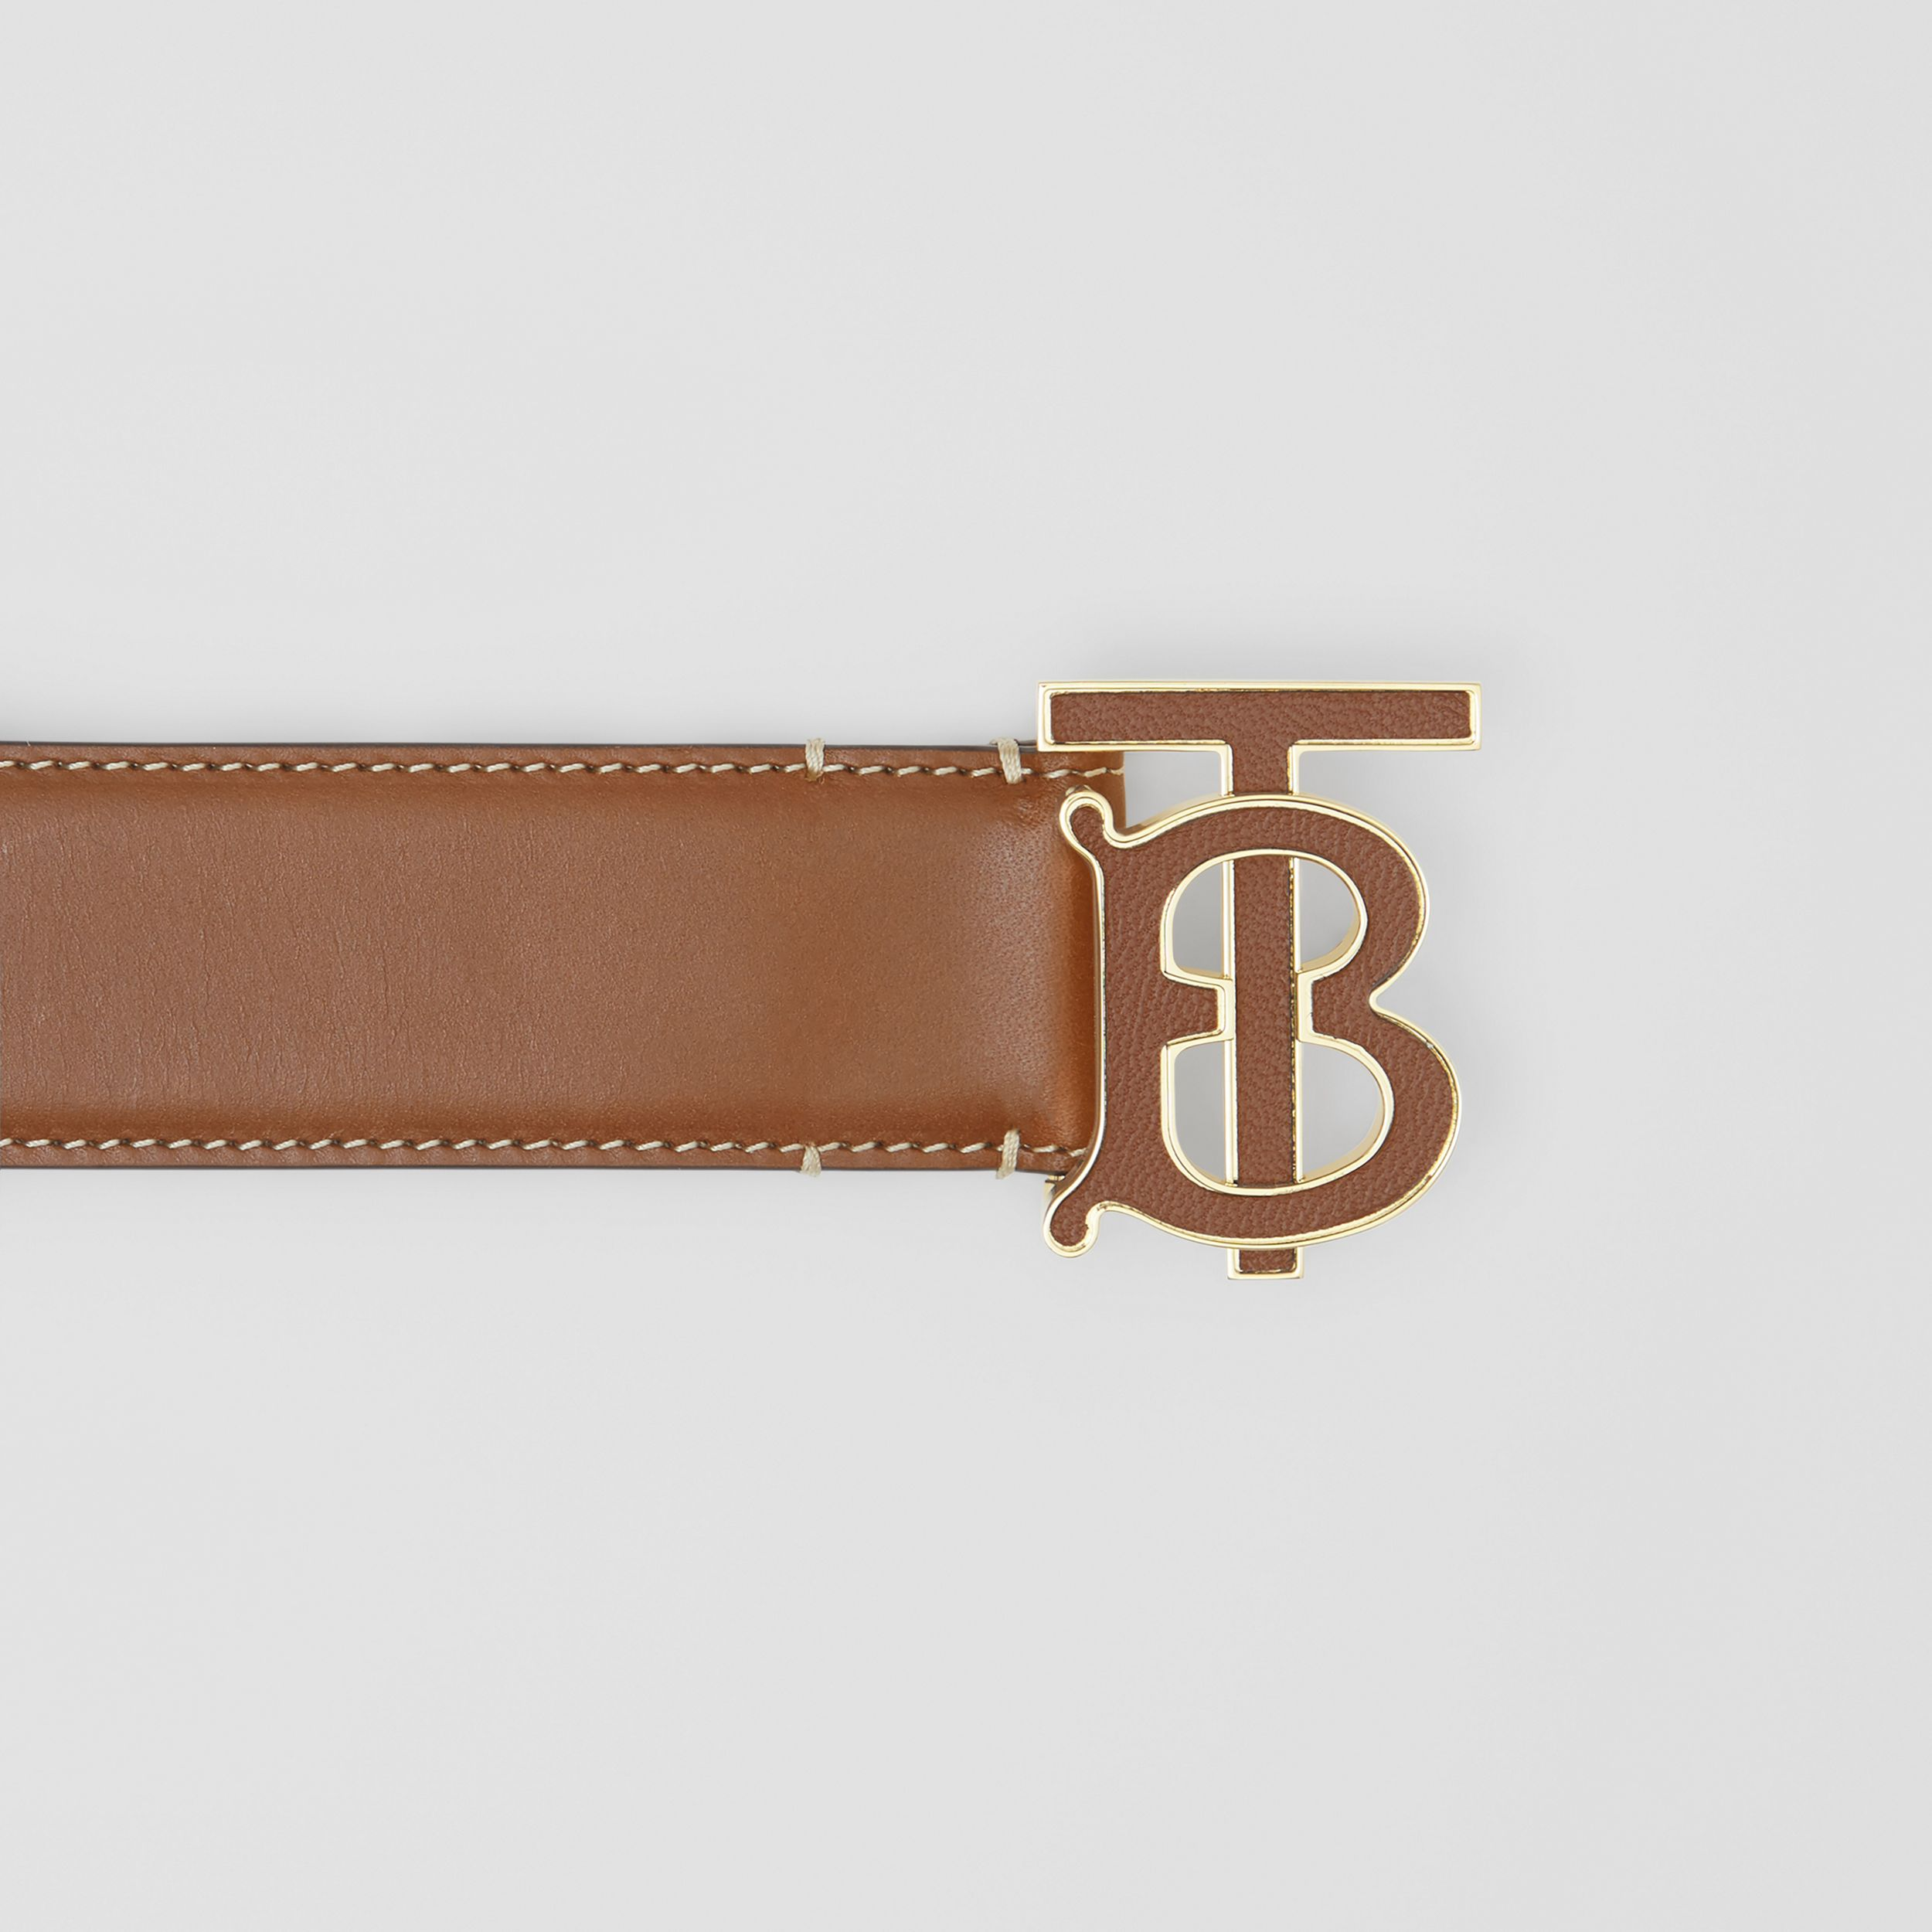 Monogram Motif Leather Belt in Tan - Women | Burberry Hong Kong S.A.R. - 2